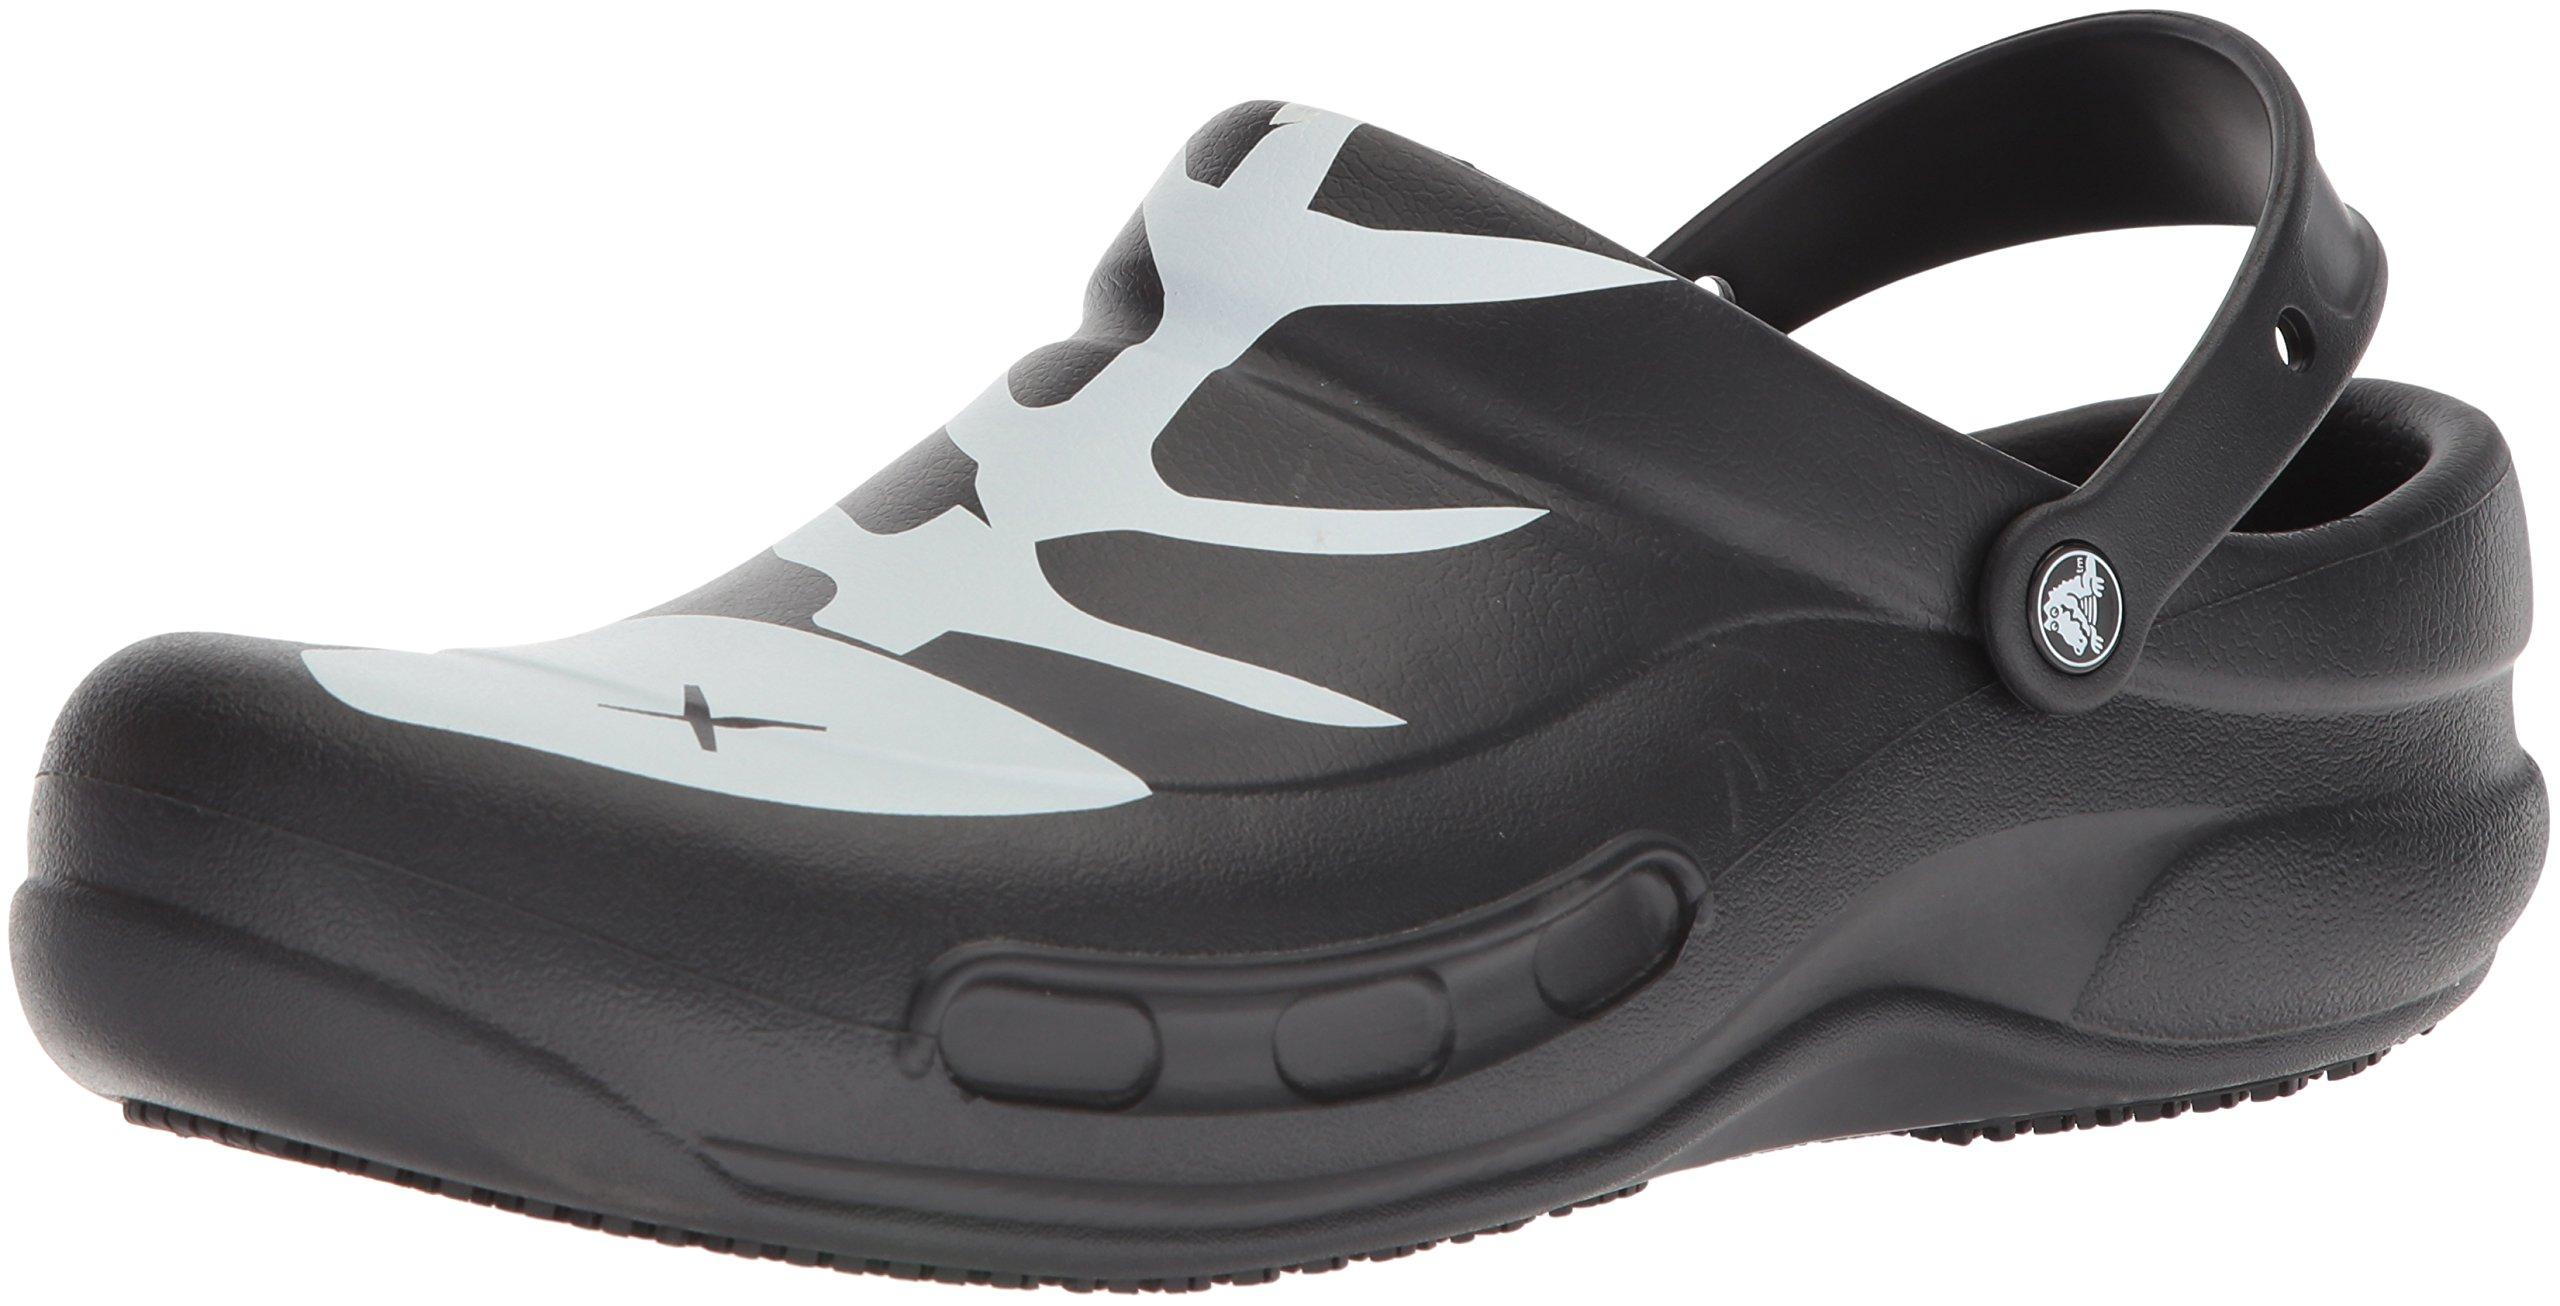 Crocs Unisex Bistro Graphic Clog,Black/White/Black,9 US Men / 11 US Women